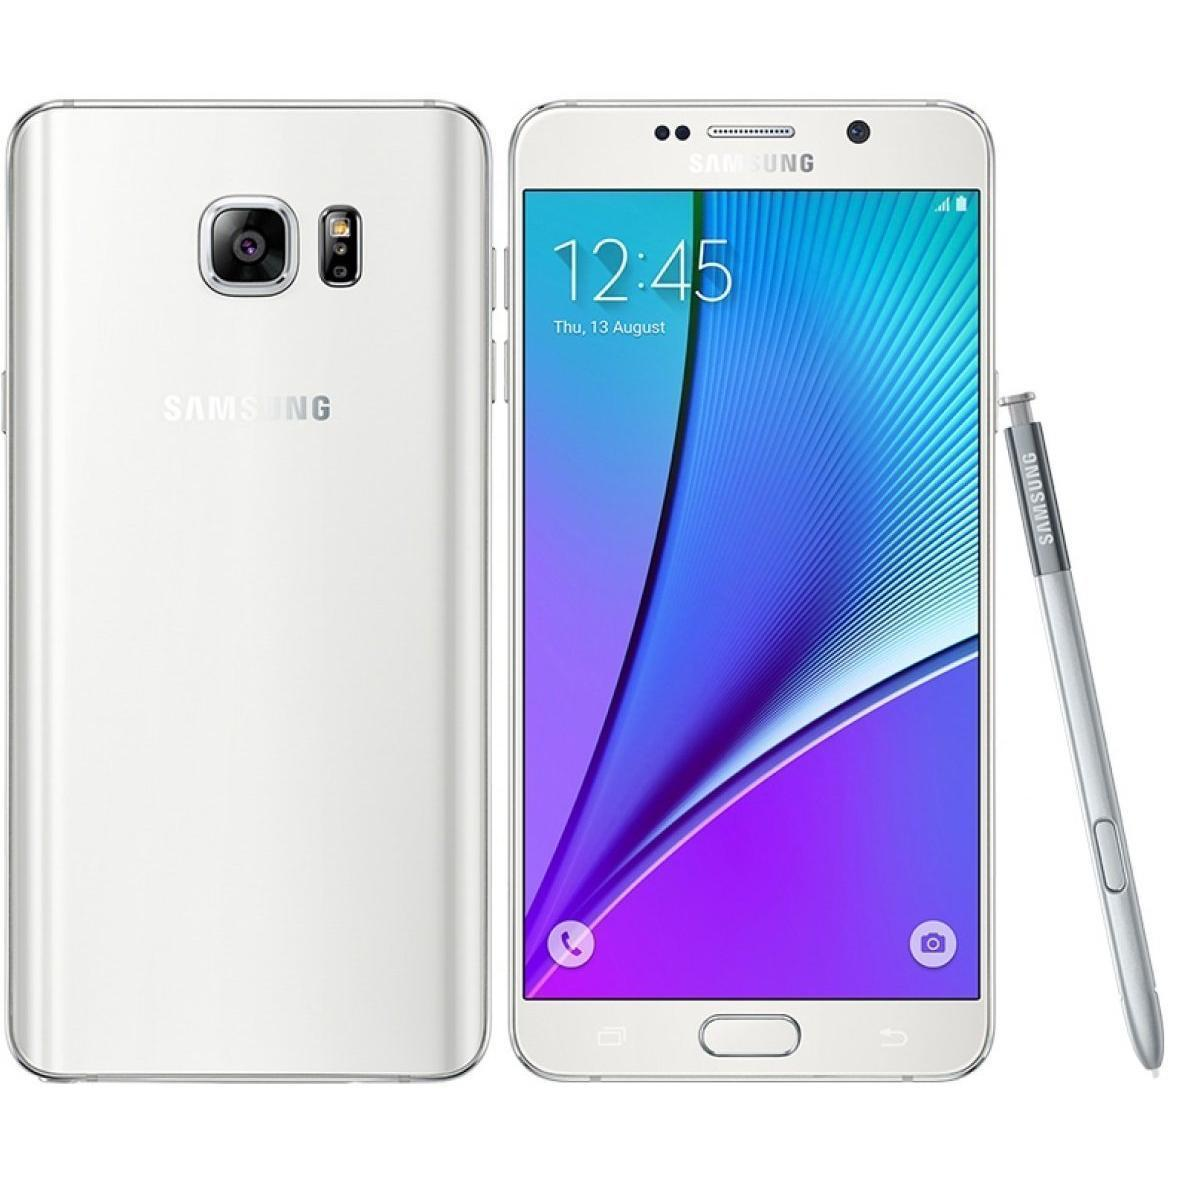 Samsung Galaxy Note 5 32GB - Blanco - Libre